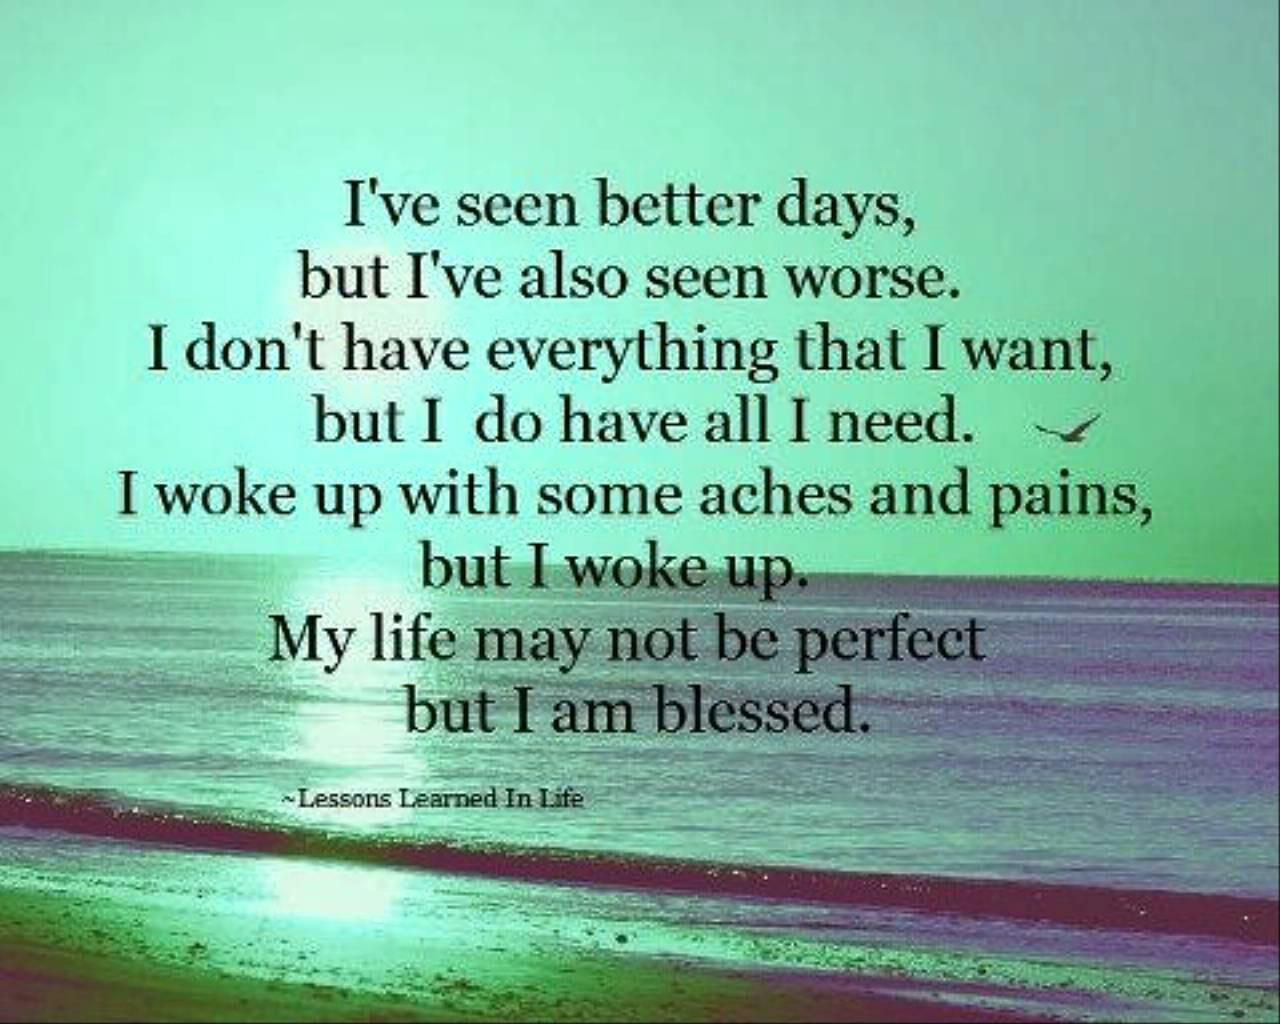 i am blessed quotes and sayings - photo #6